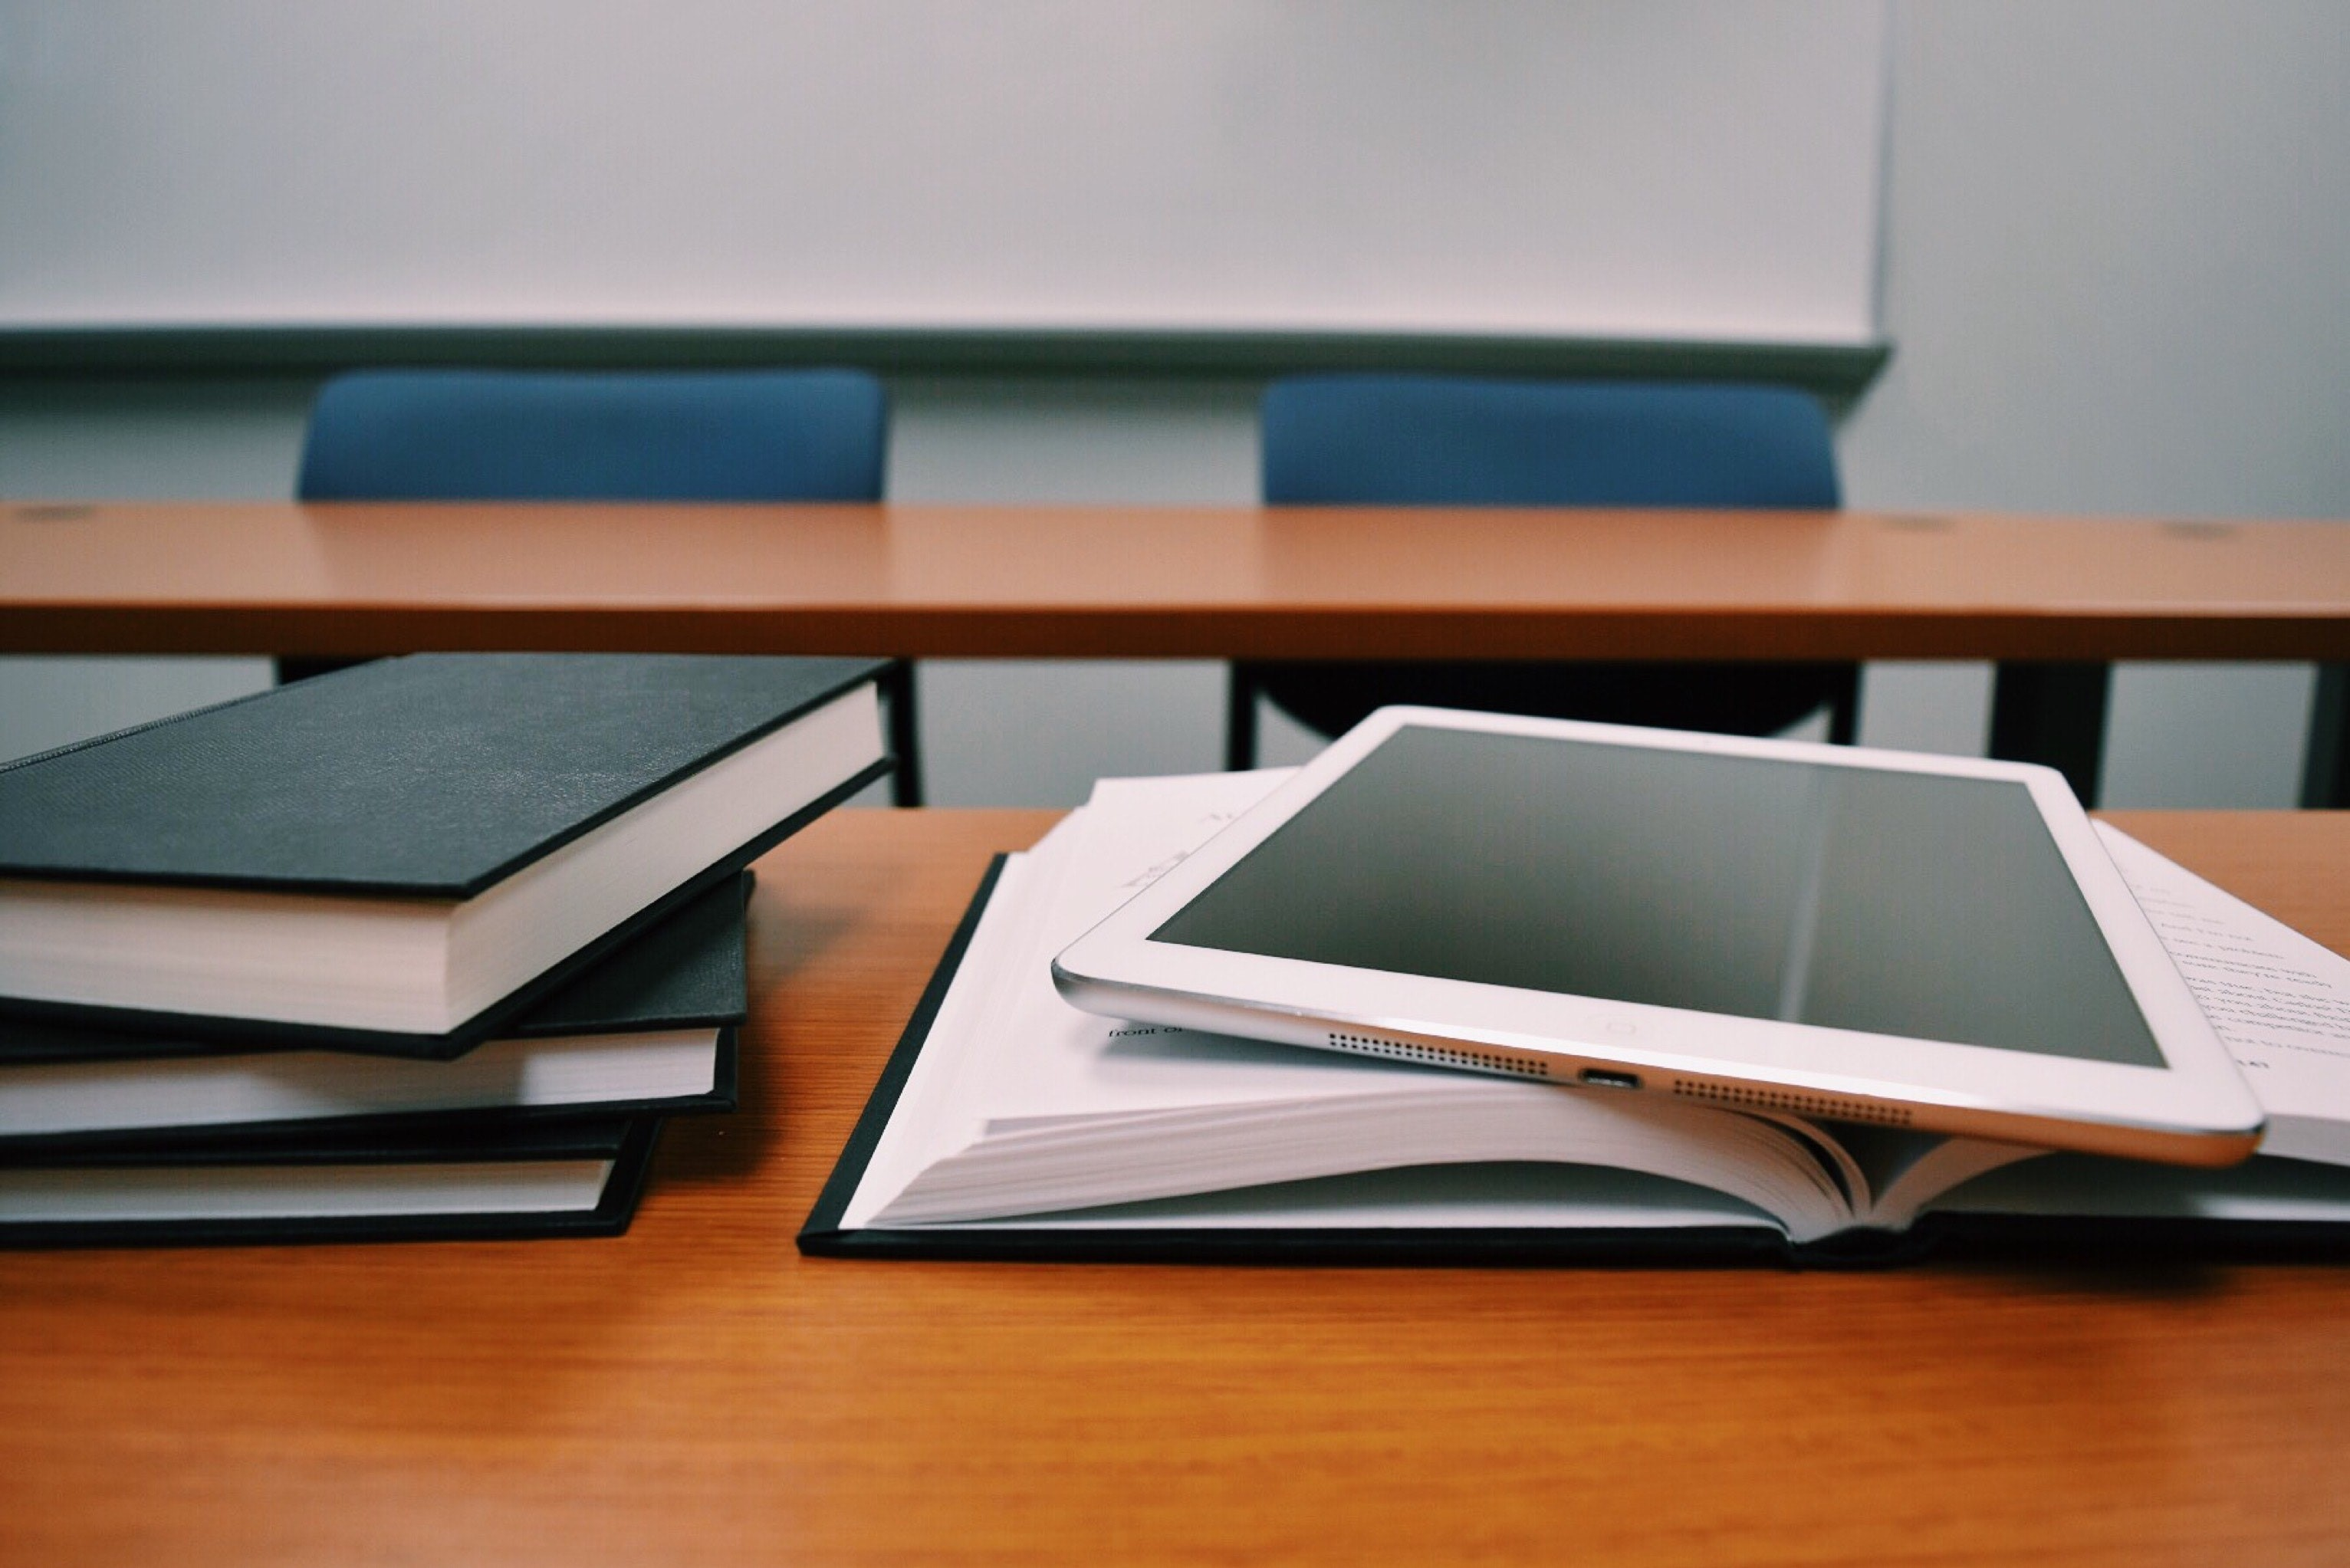 image of textbooks and ipad